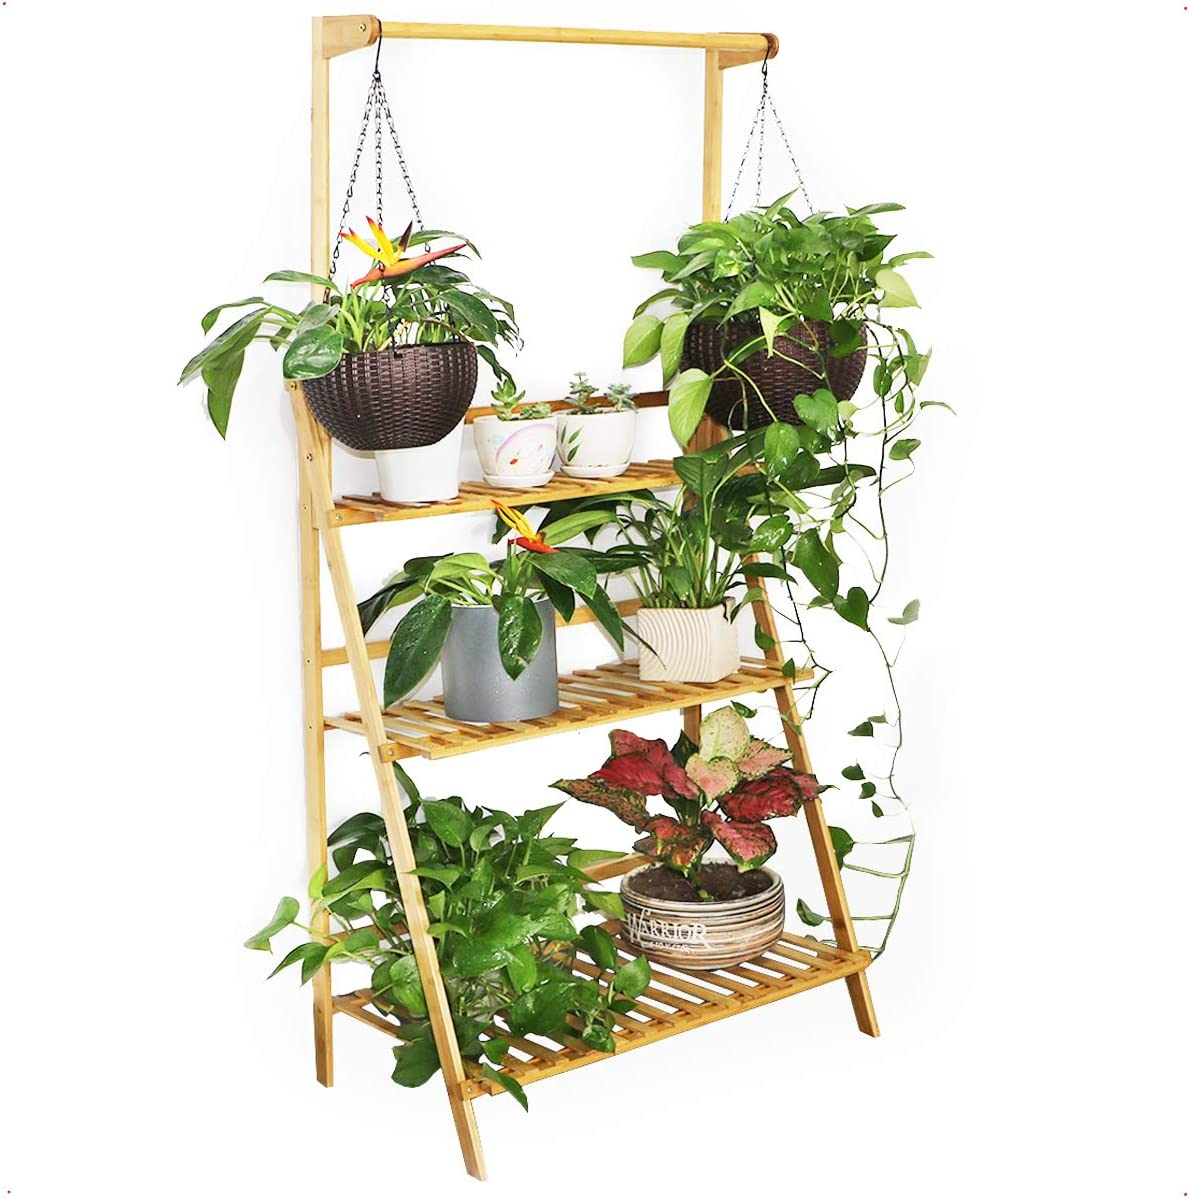 Moutik Plants Stand Folding Bamboo Planter Pots 3 Tier Hanging Organizer Storage Shelves Rack Flower Display Shelving Unit Holder 27 5in Amazon Ca Patio Lawn Garden